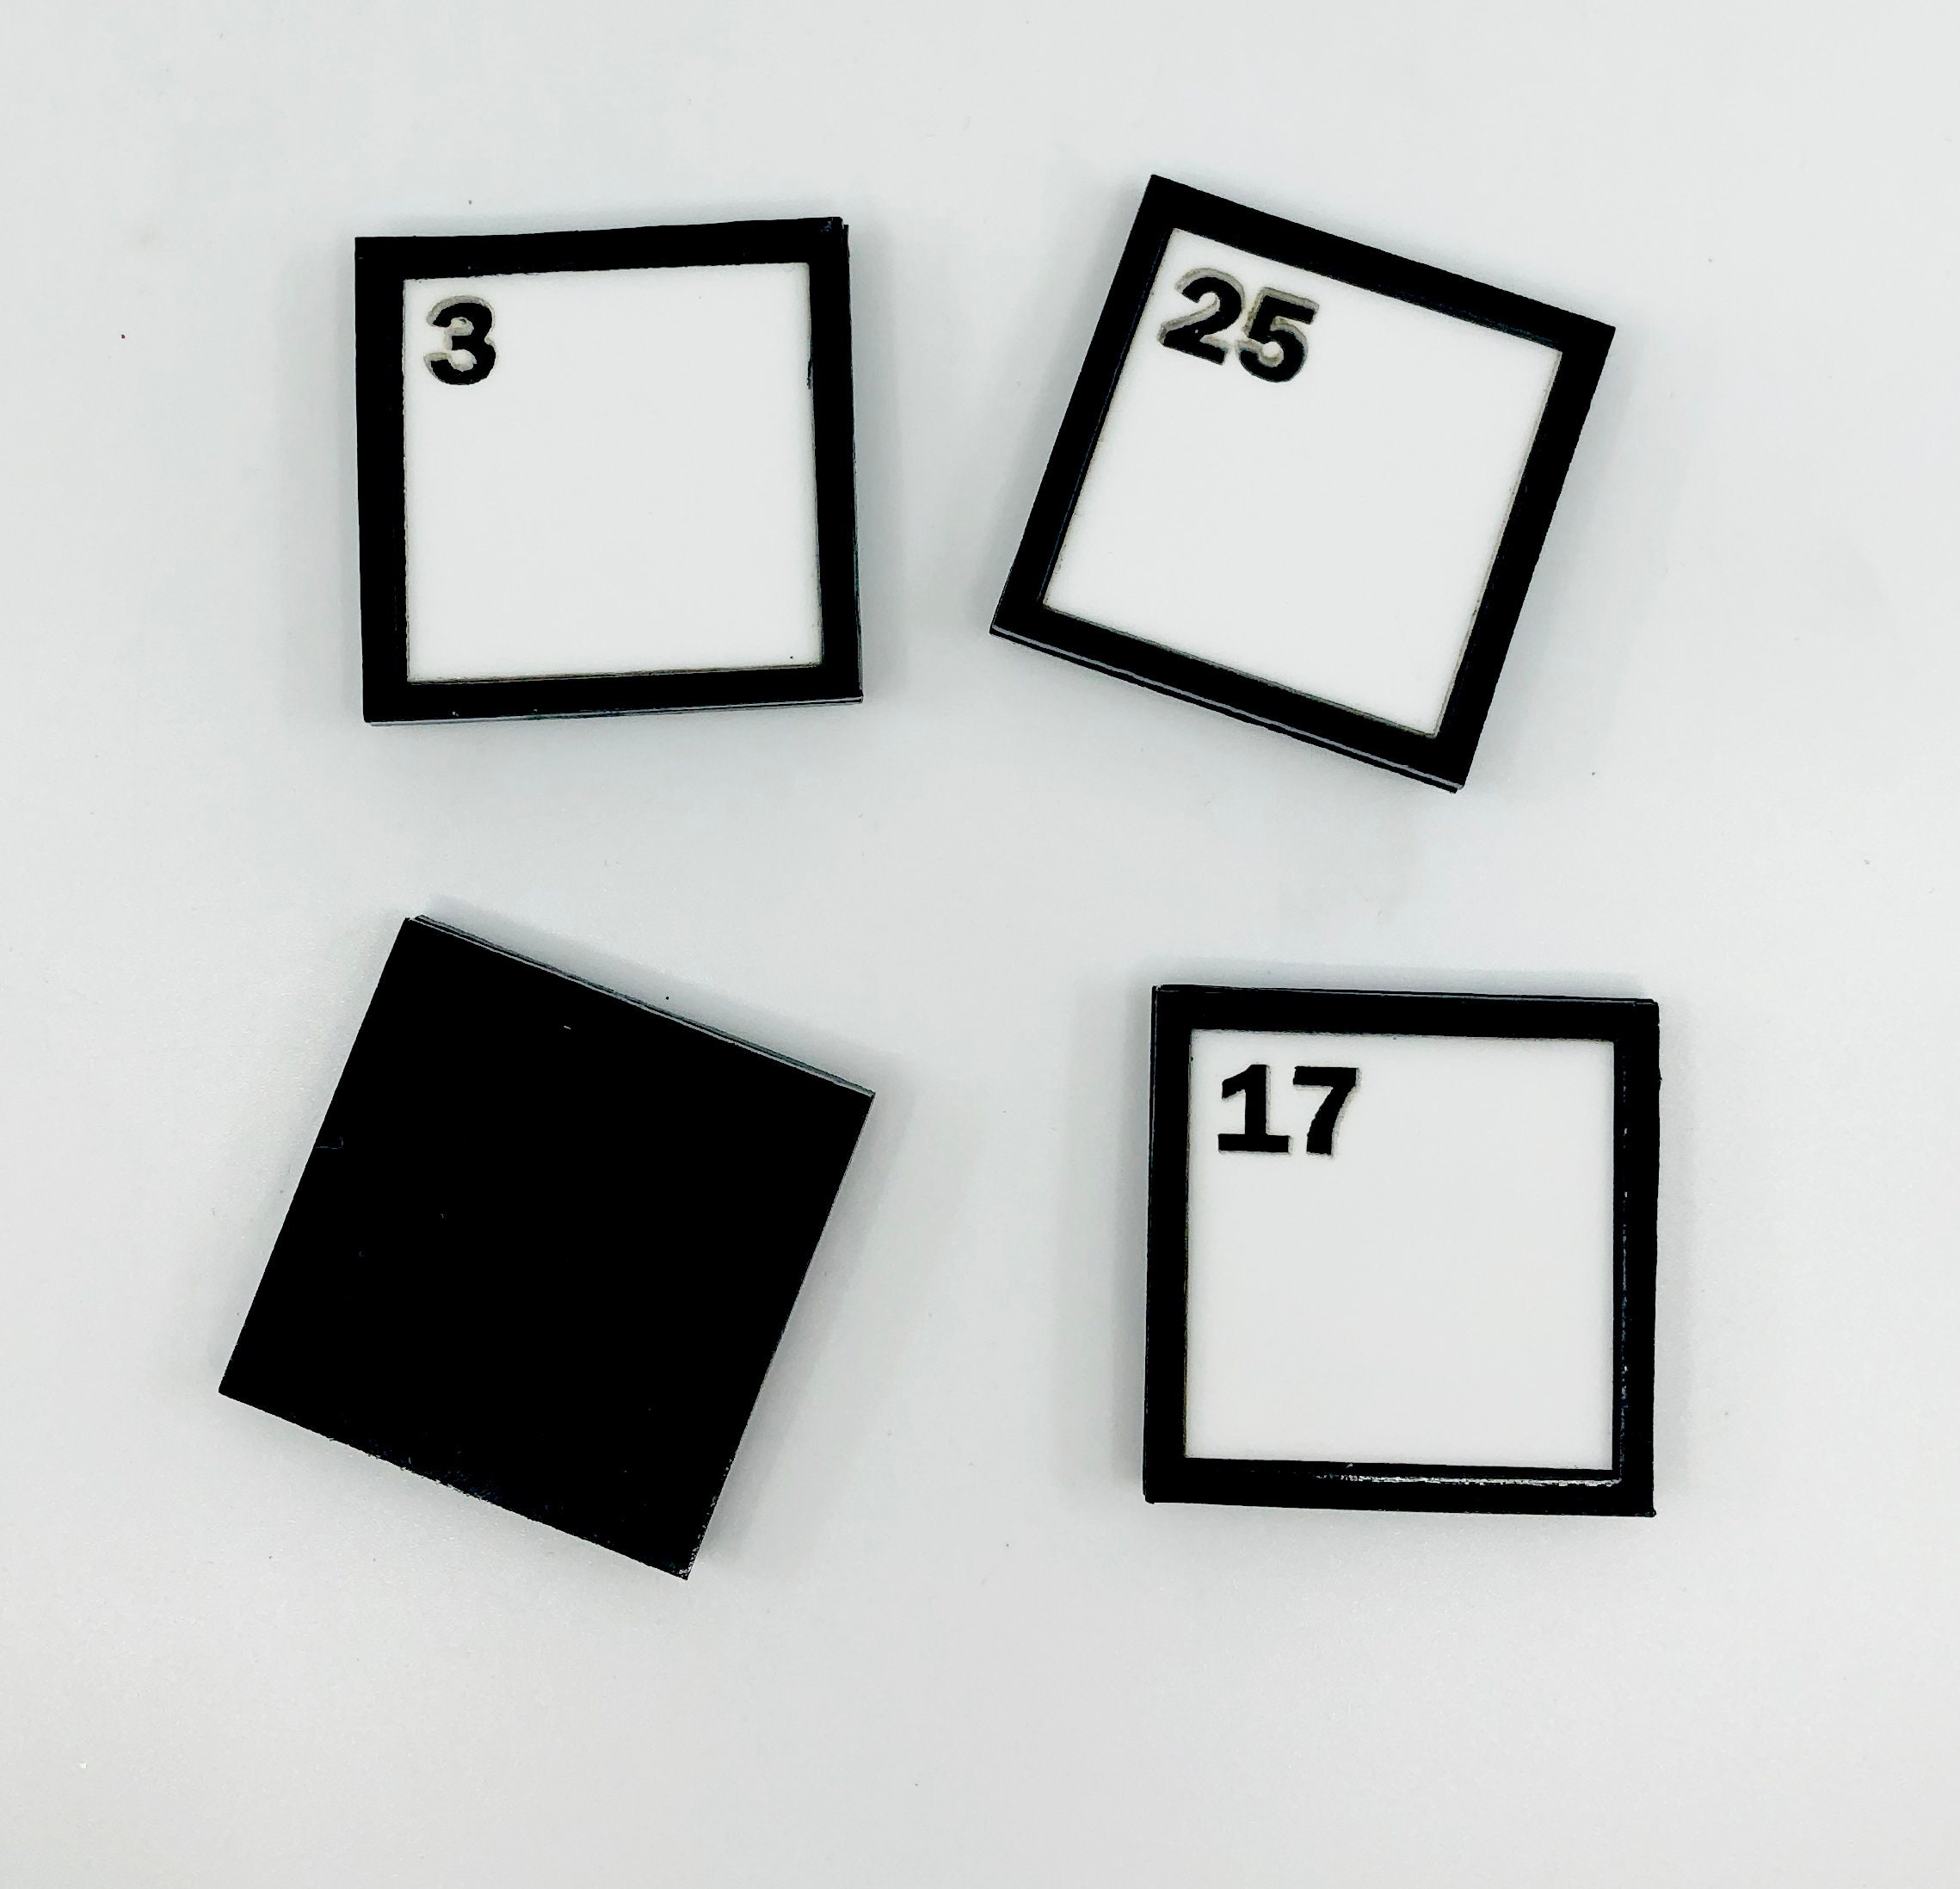 Crossword Magnets Puzzle Geeky Gift Word Nerd Laser Cut Acrylic Magnets Crossword Puzzle Magnets Geek Chic Nerdy Magnets